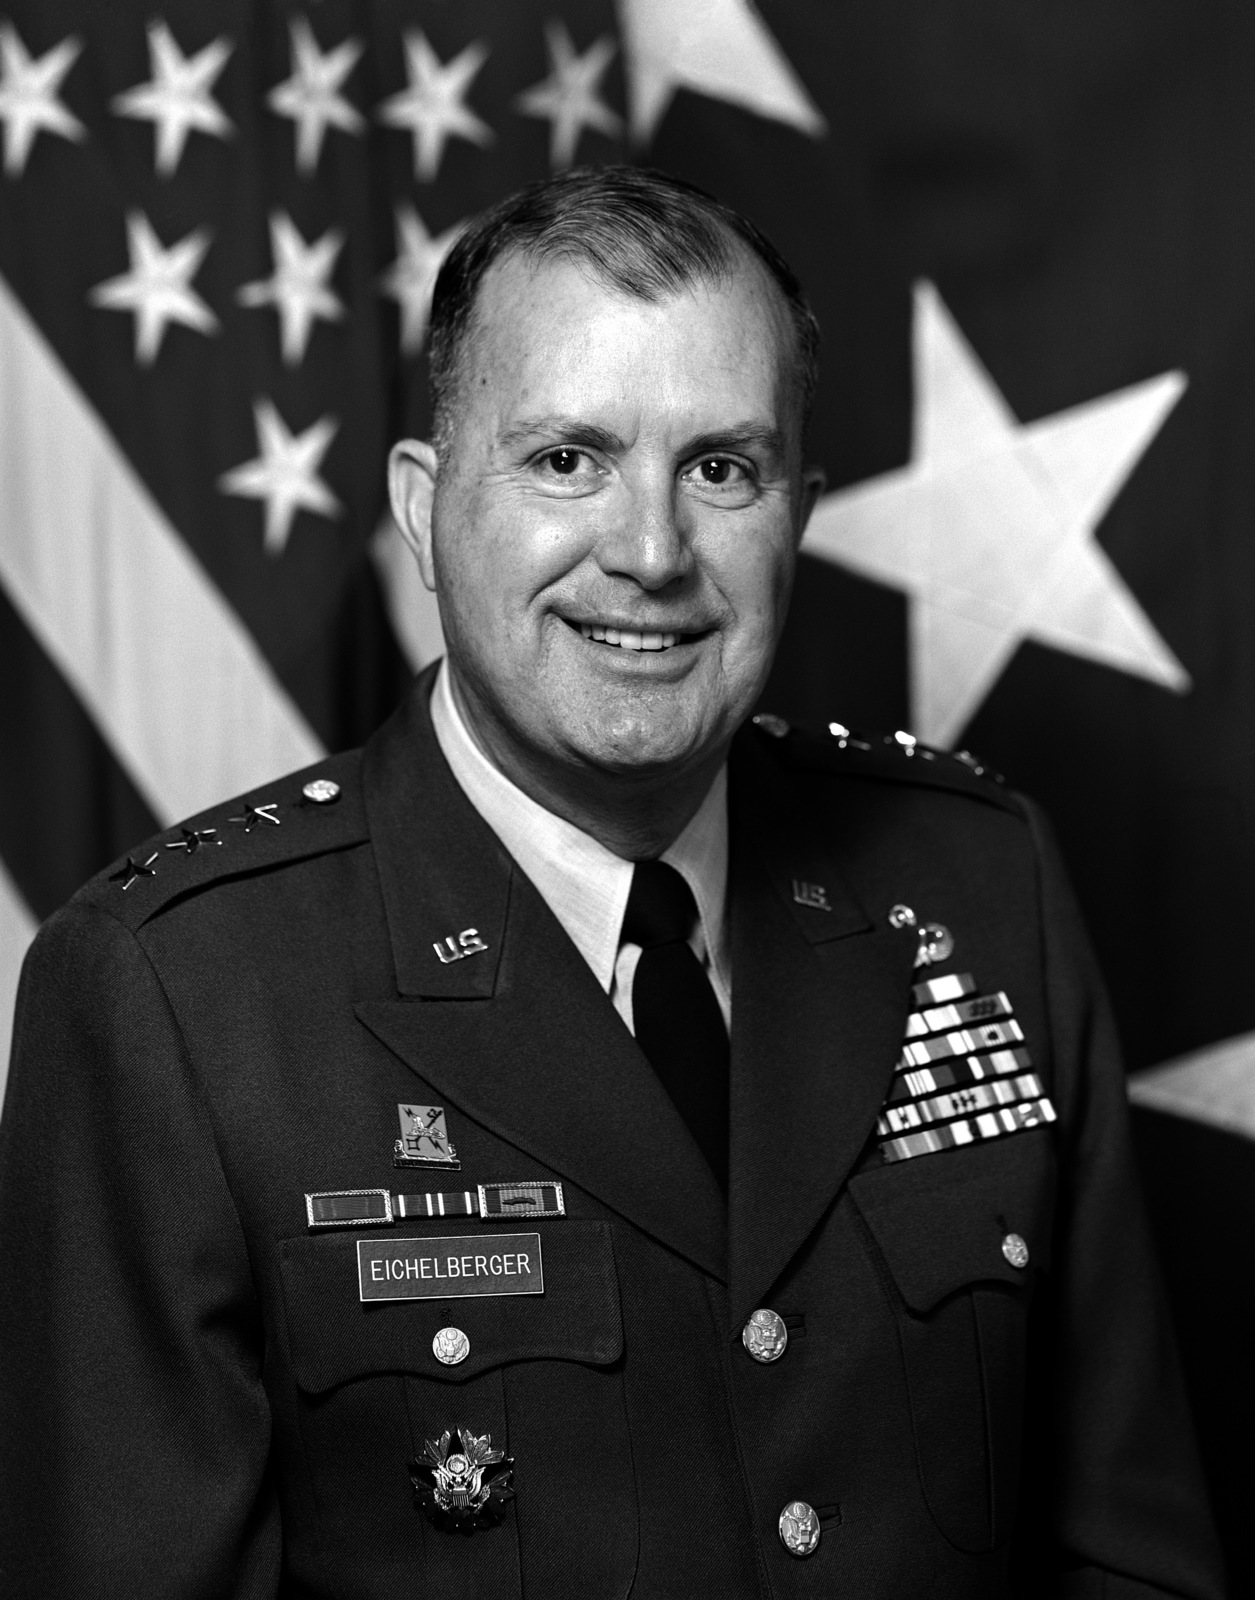 LGEN Charles B. Eichelberger, USA (uncovered)